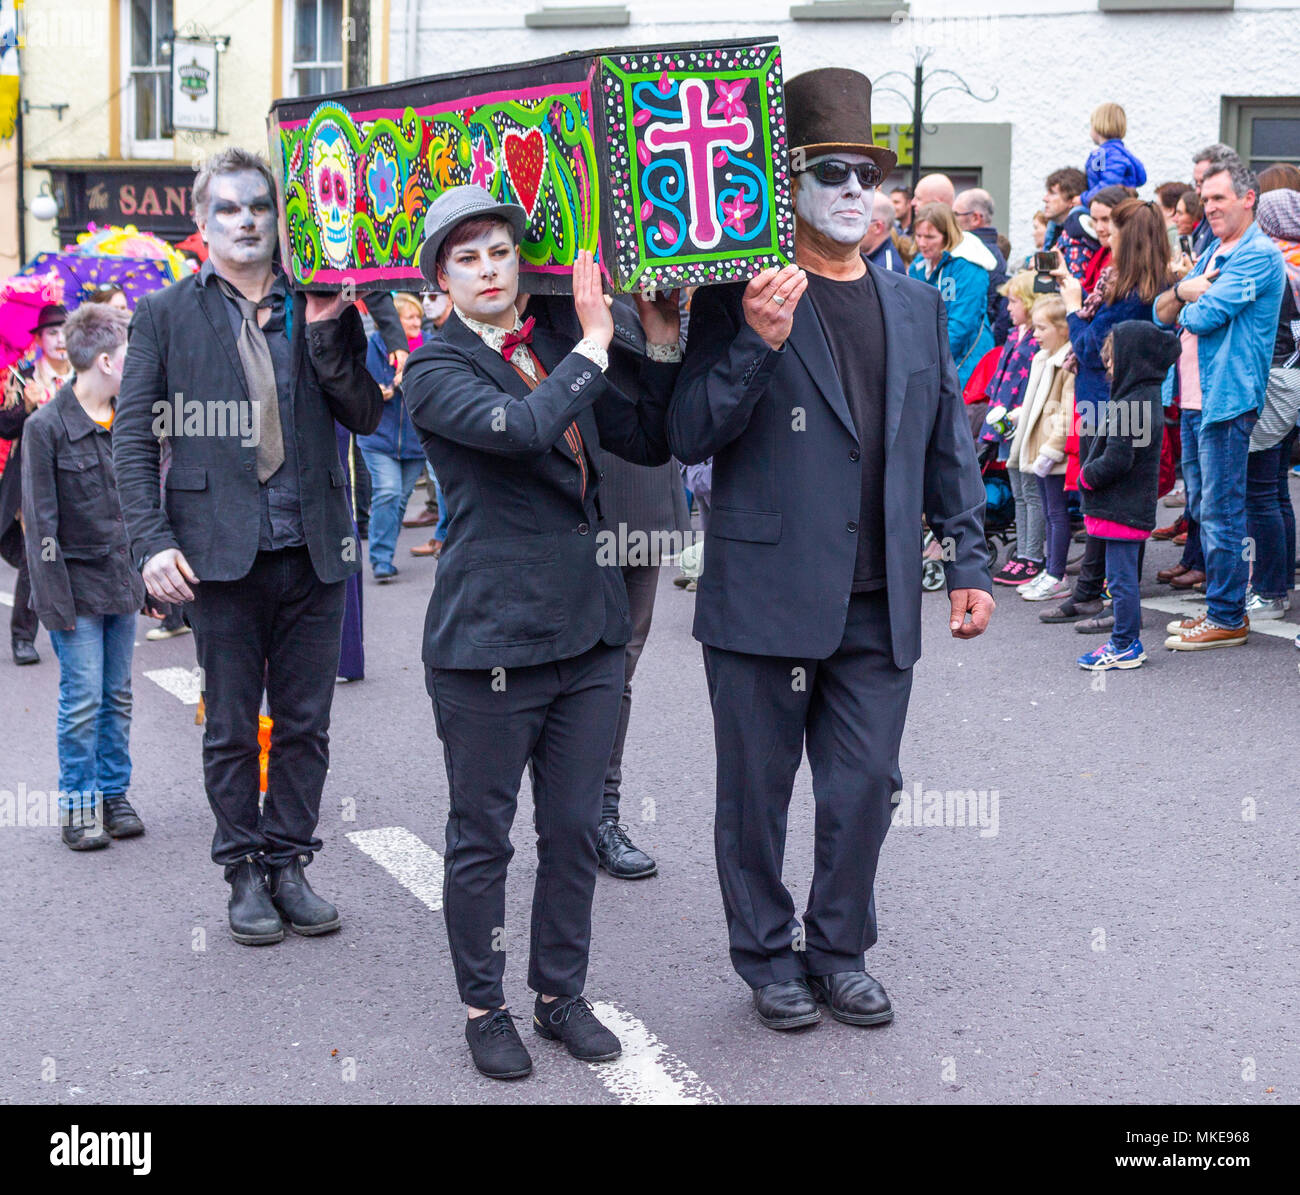 brightly-painted-coffin-and-street-performers-makeup-with-skull-faces-parading-through-the-street-as-part-of-a-music-festival-celebration-in-ireland-MKE968.jpg